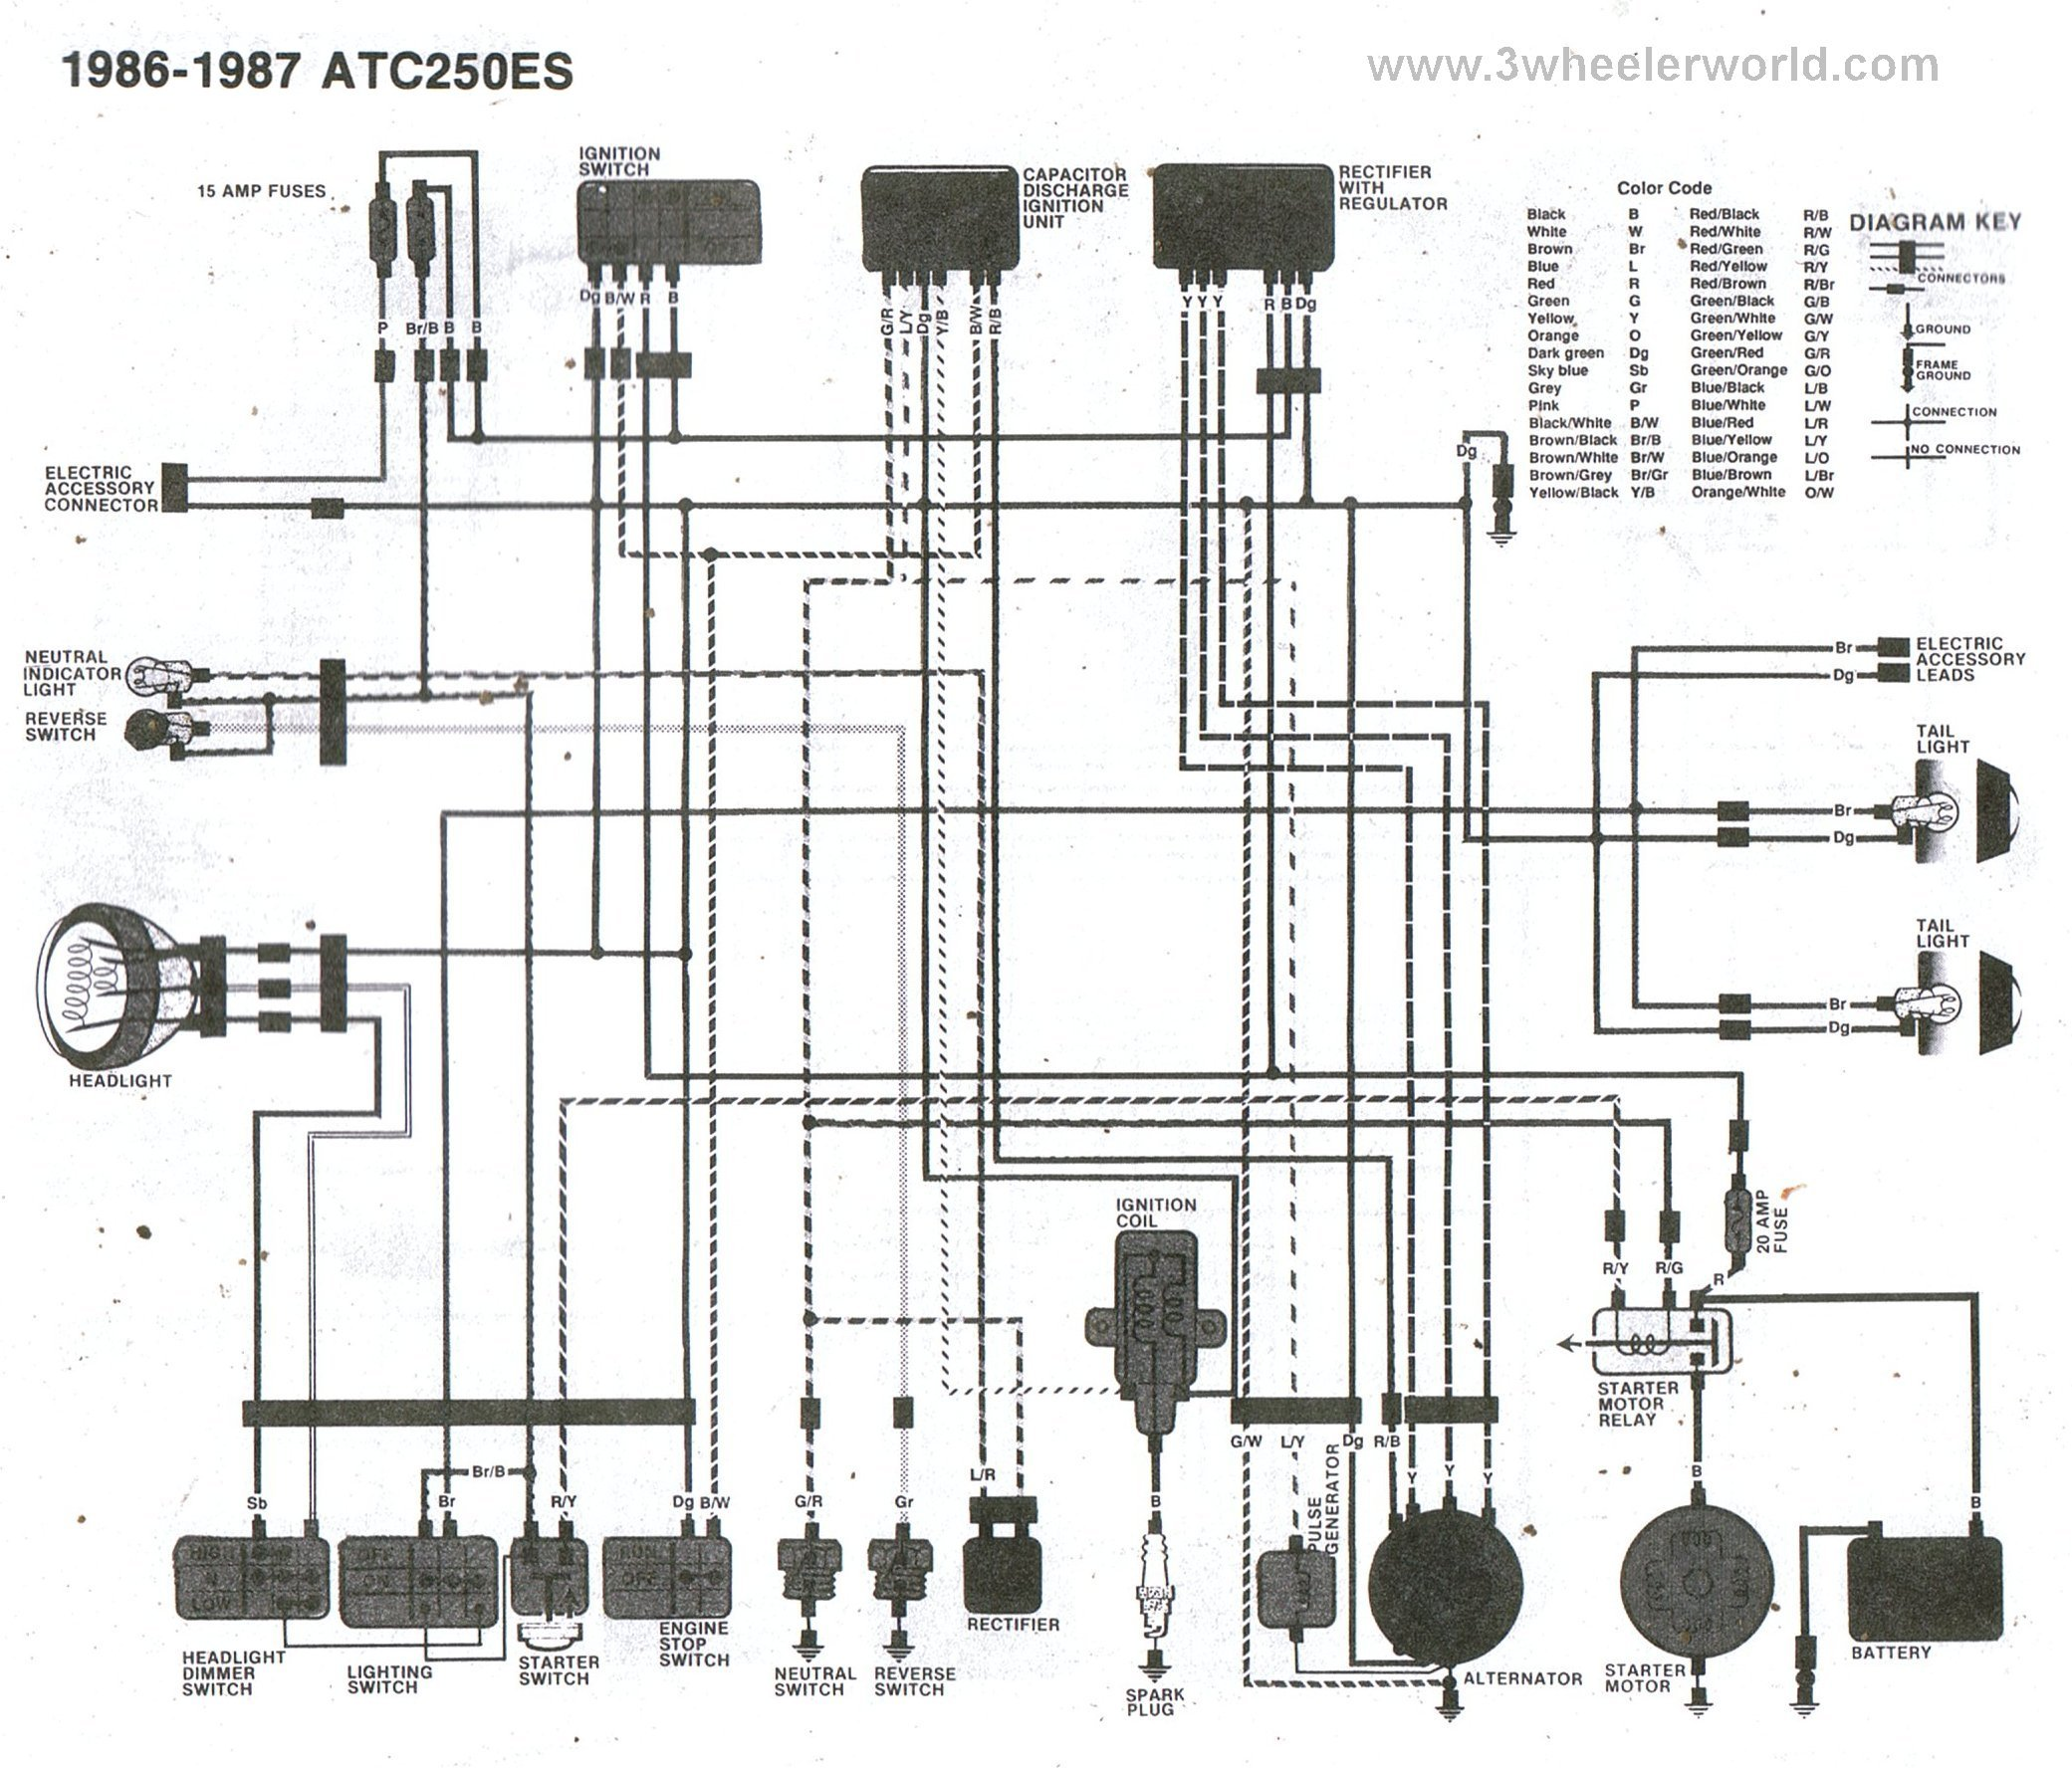 Yamaha 250 4 Wheeler Engine Diagram